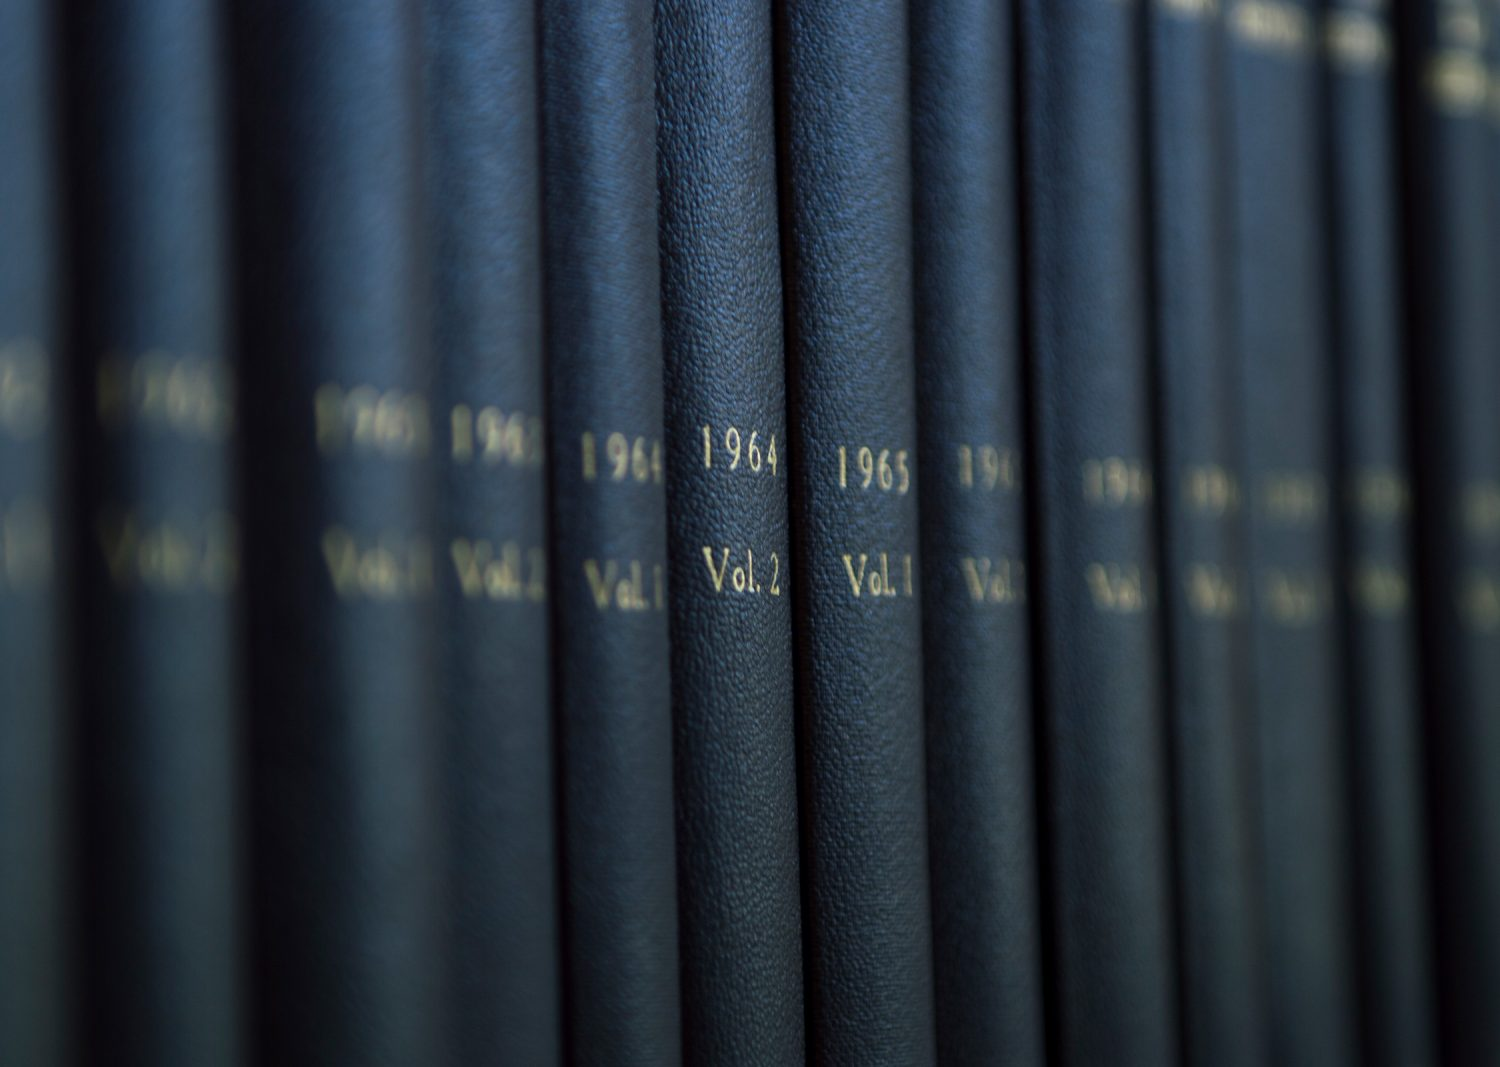 1964 Vol. 2 encyclopedia collection